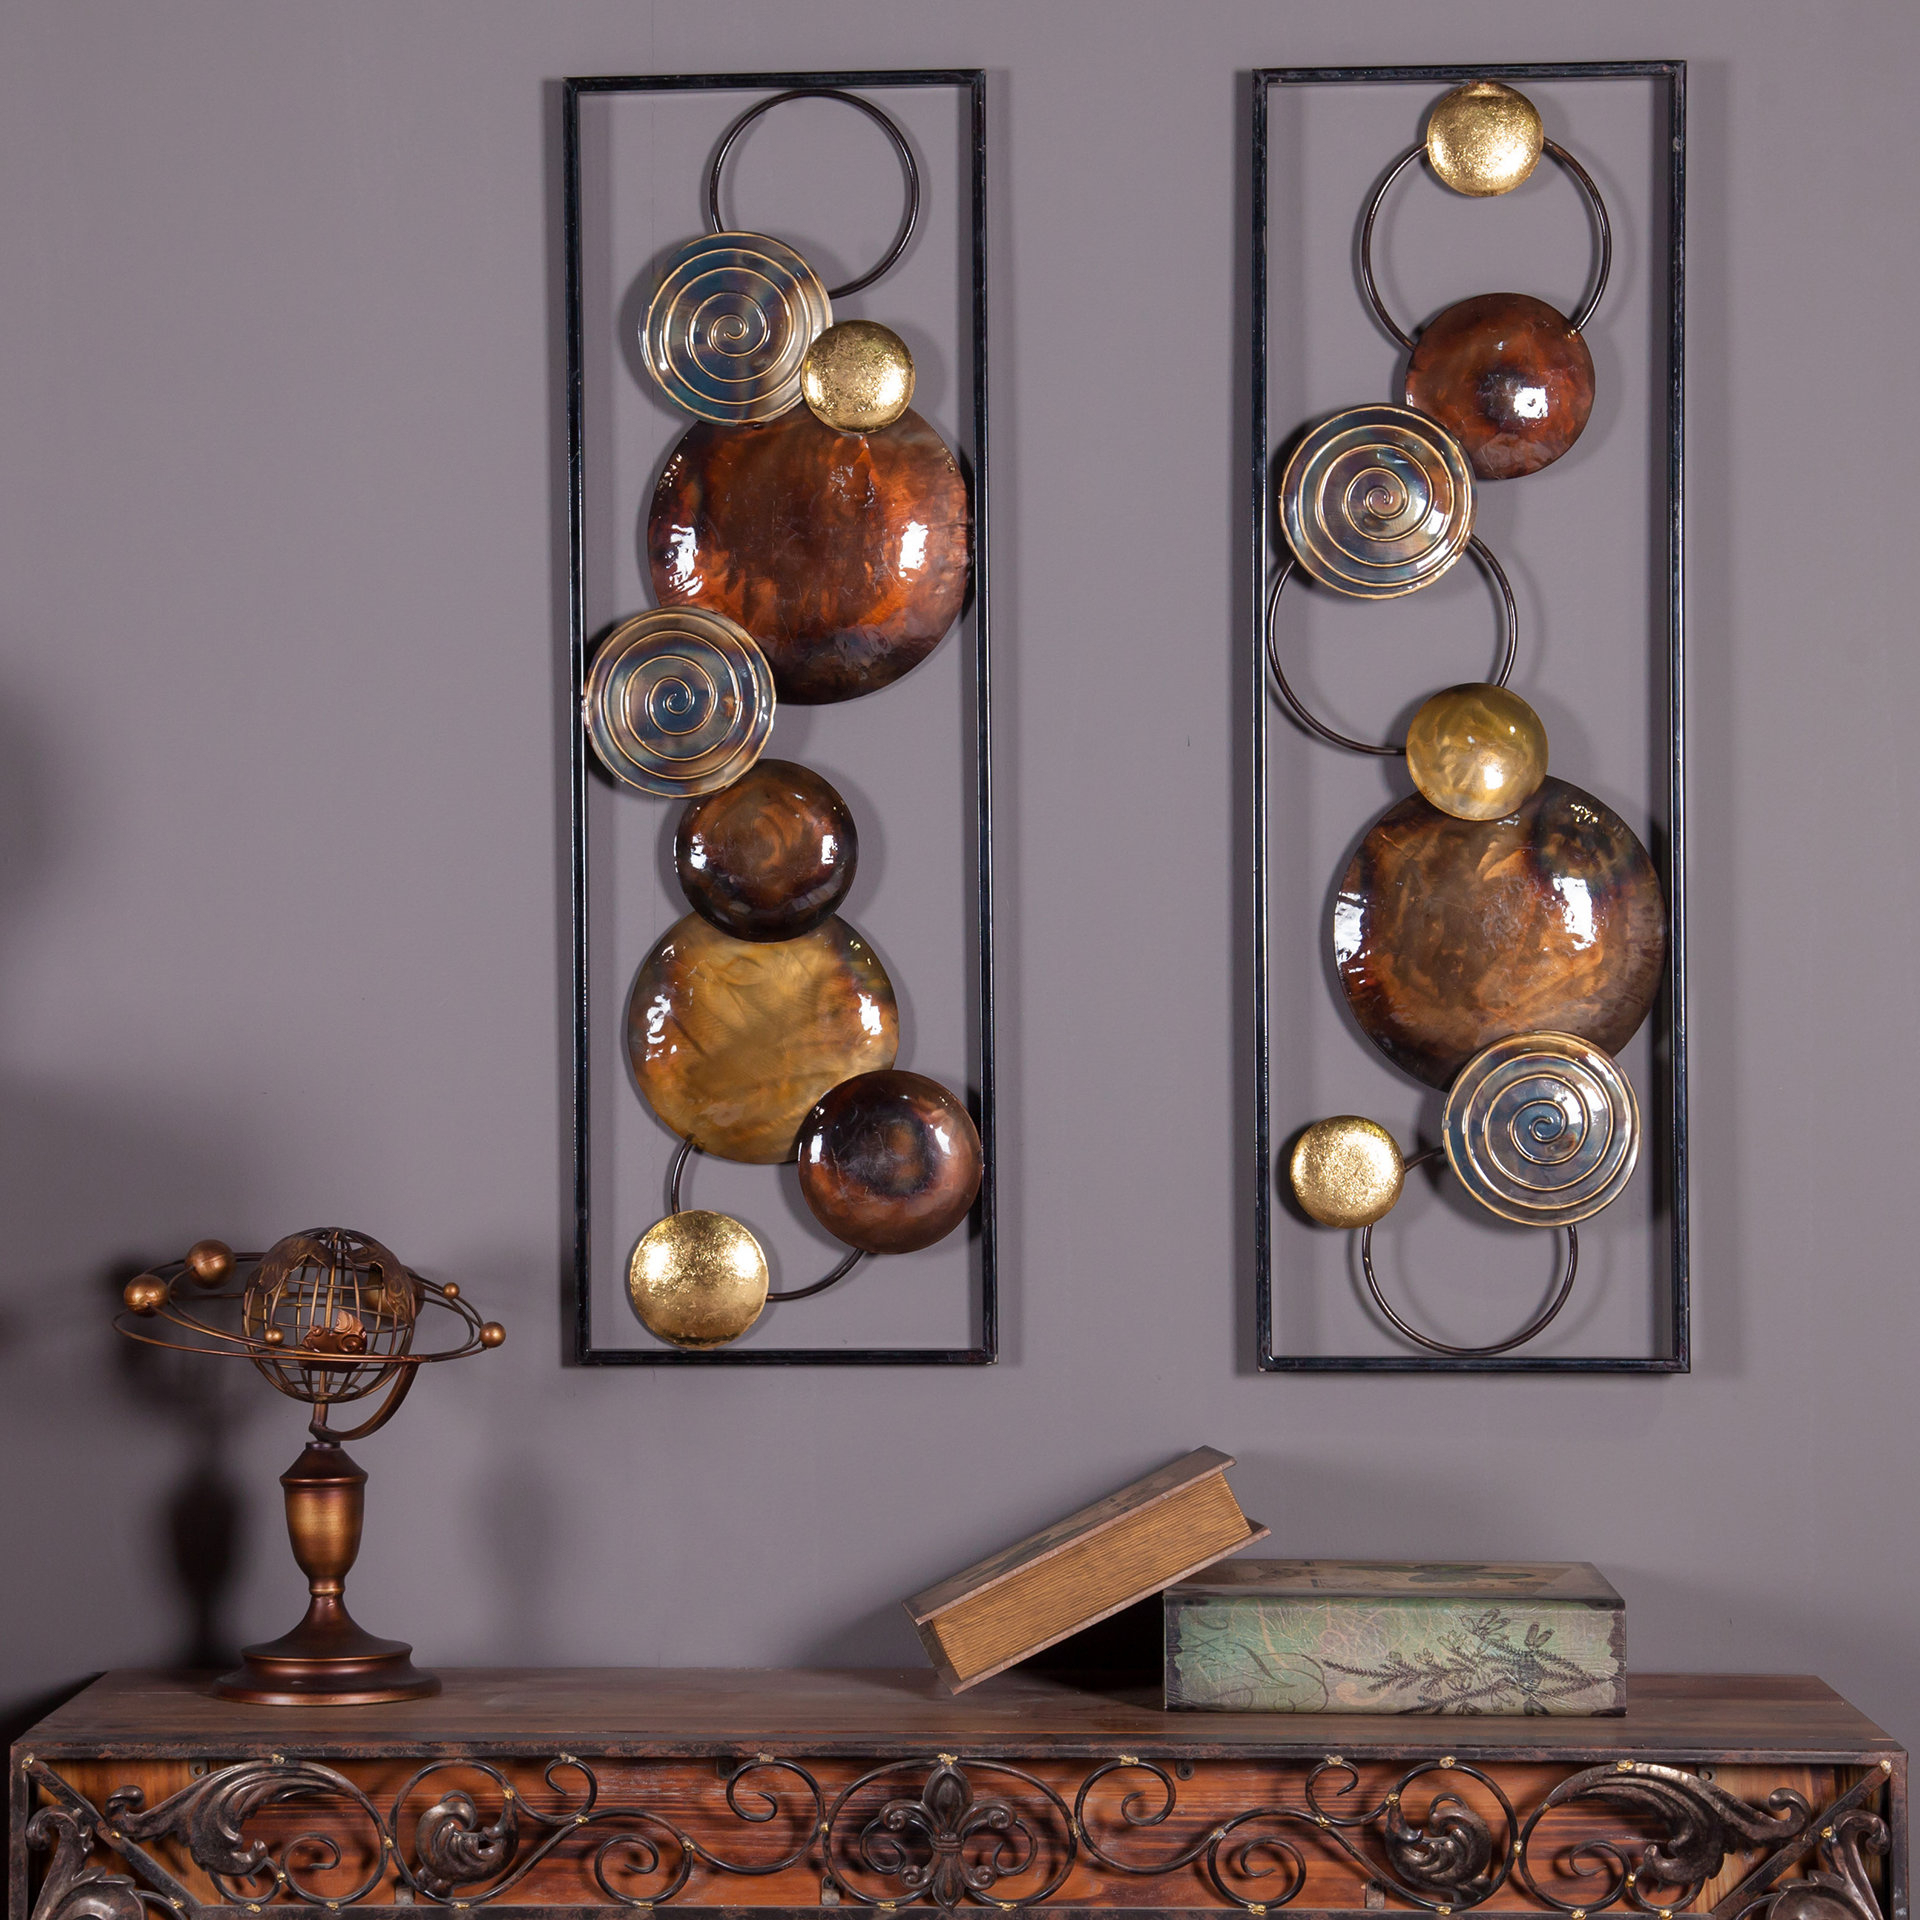 2 Piece Metal Wall Decor Set | Wayfair in 2 Piece Starburst Wall Decor Sets (Image 1 of 30)